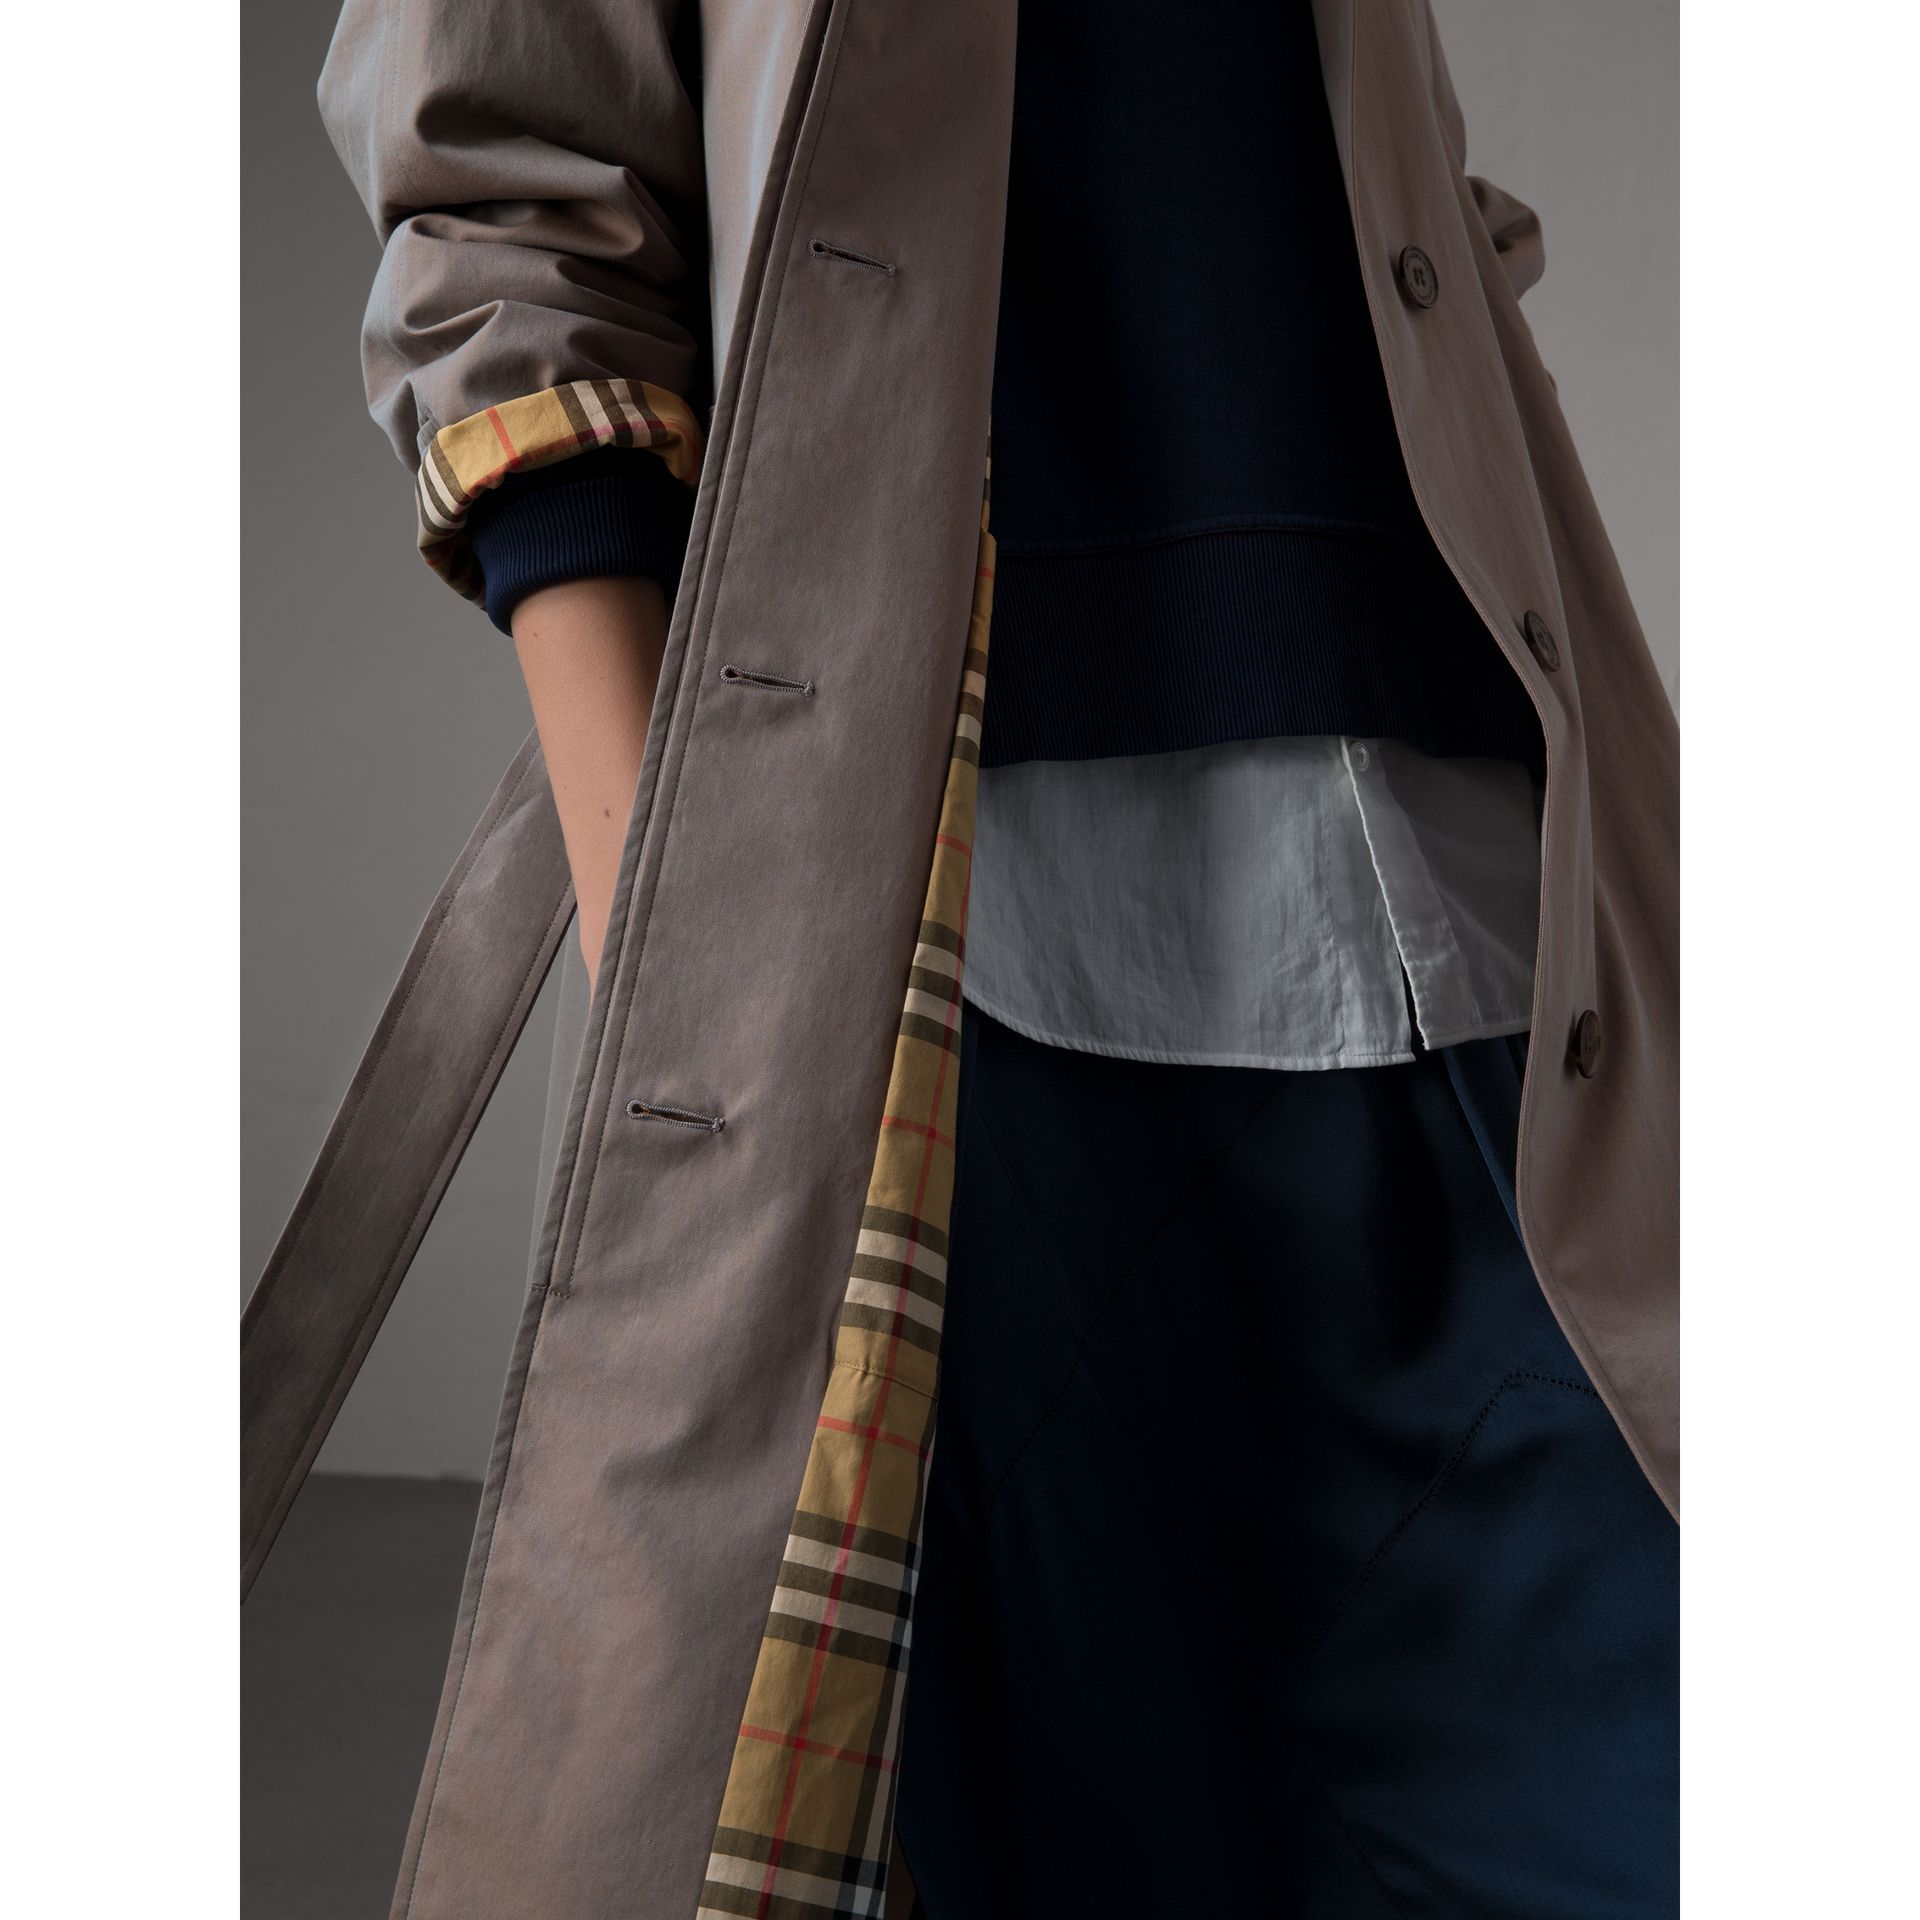 Car Coat The Brighton (Gris Lilas) - Femme | Burberry - photo de la galerie 4